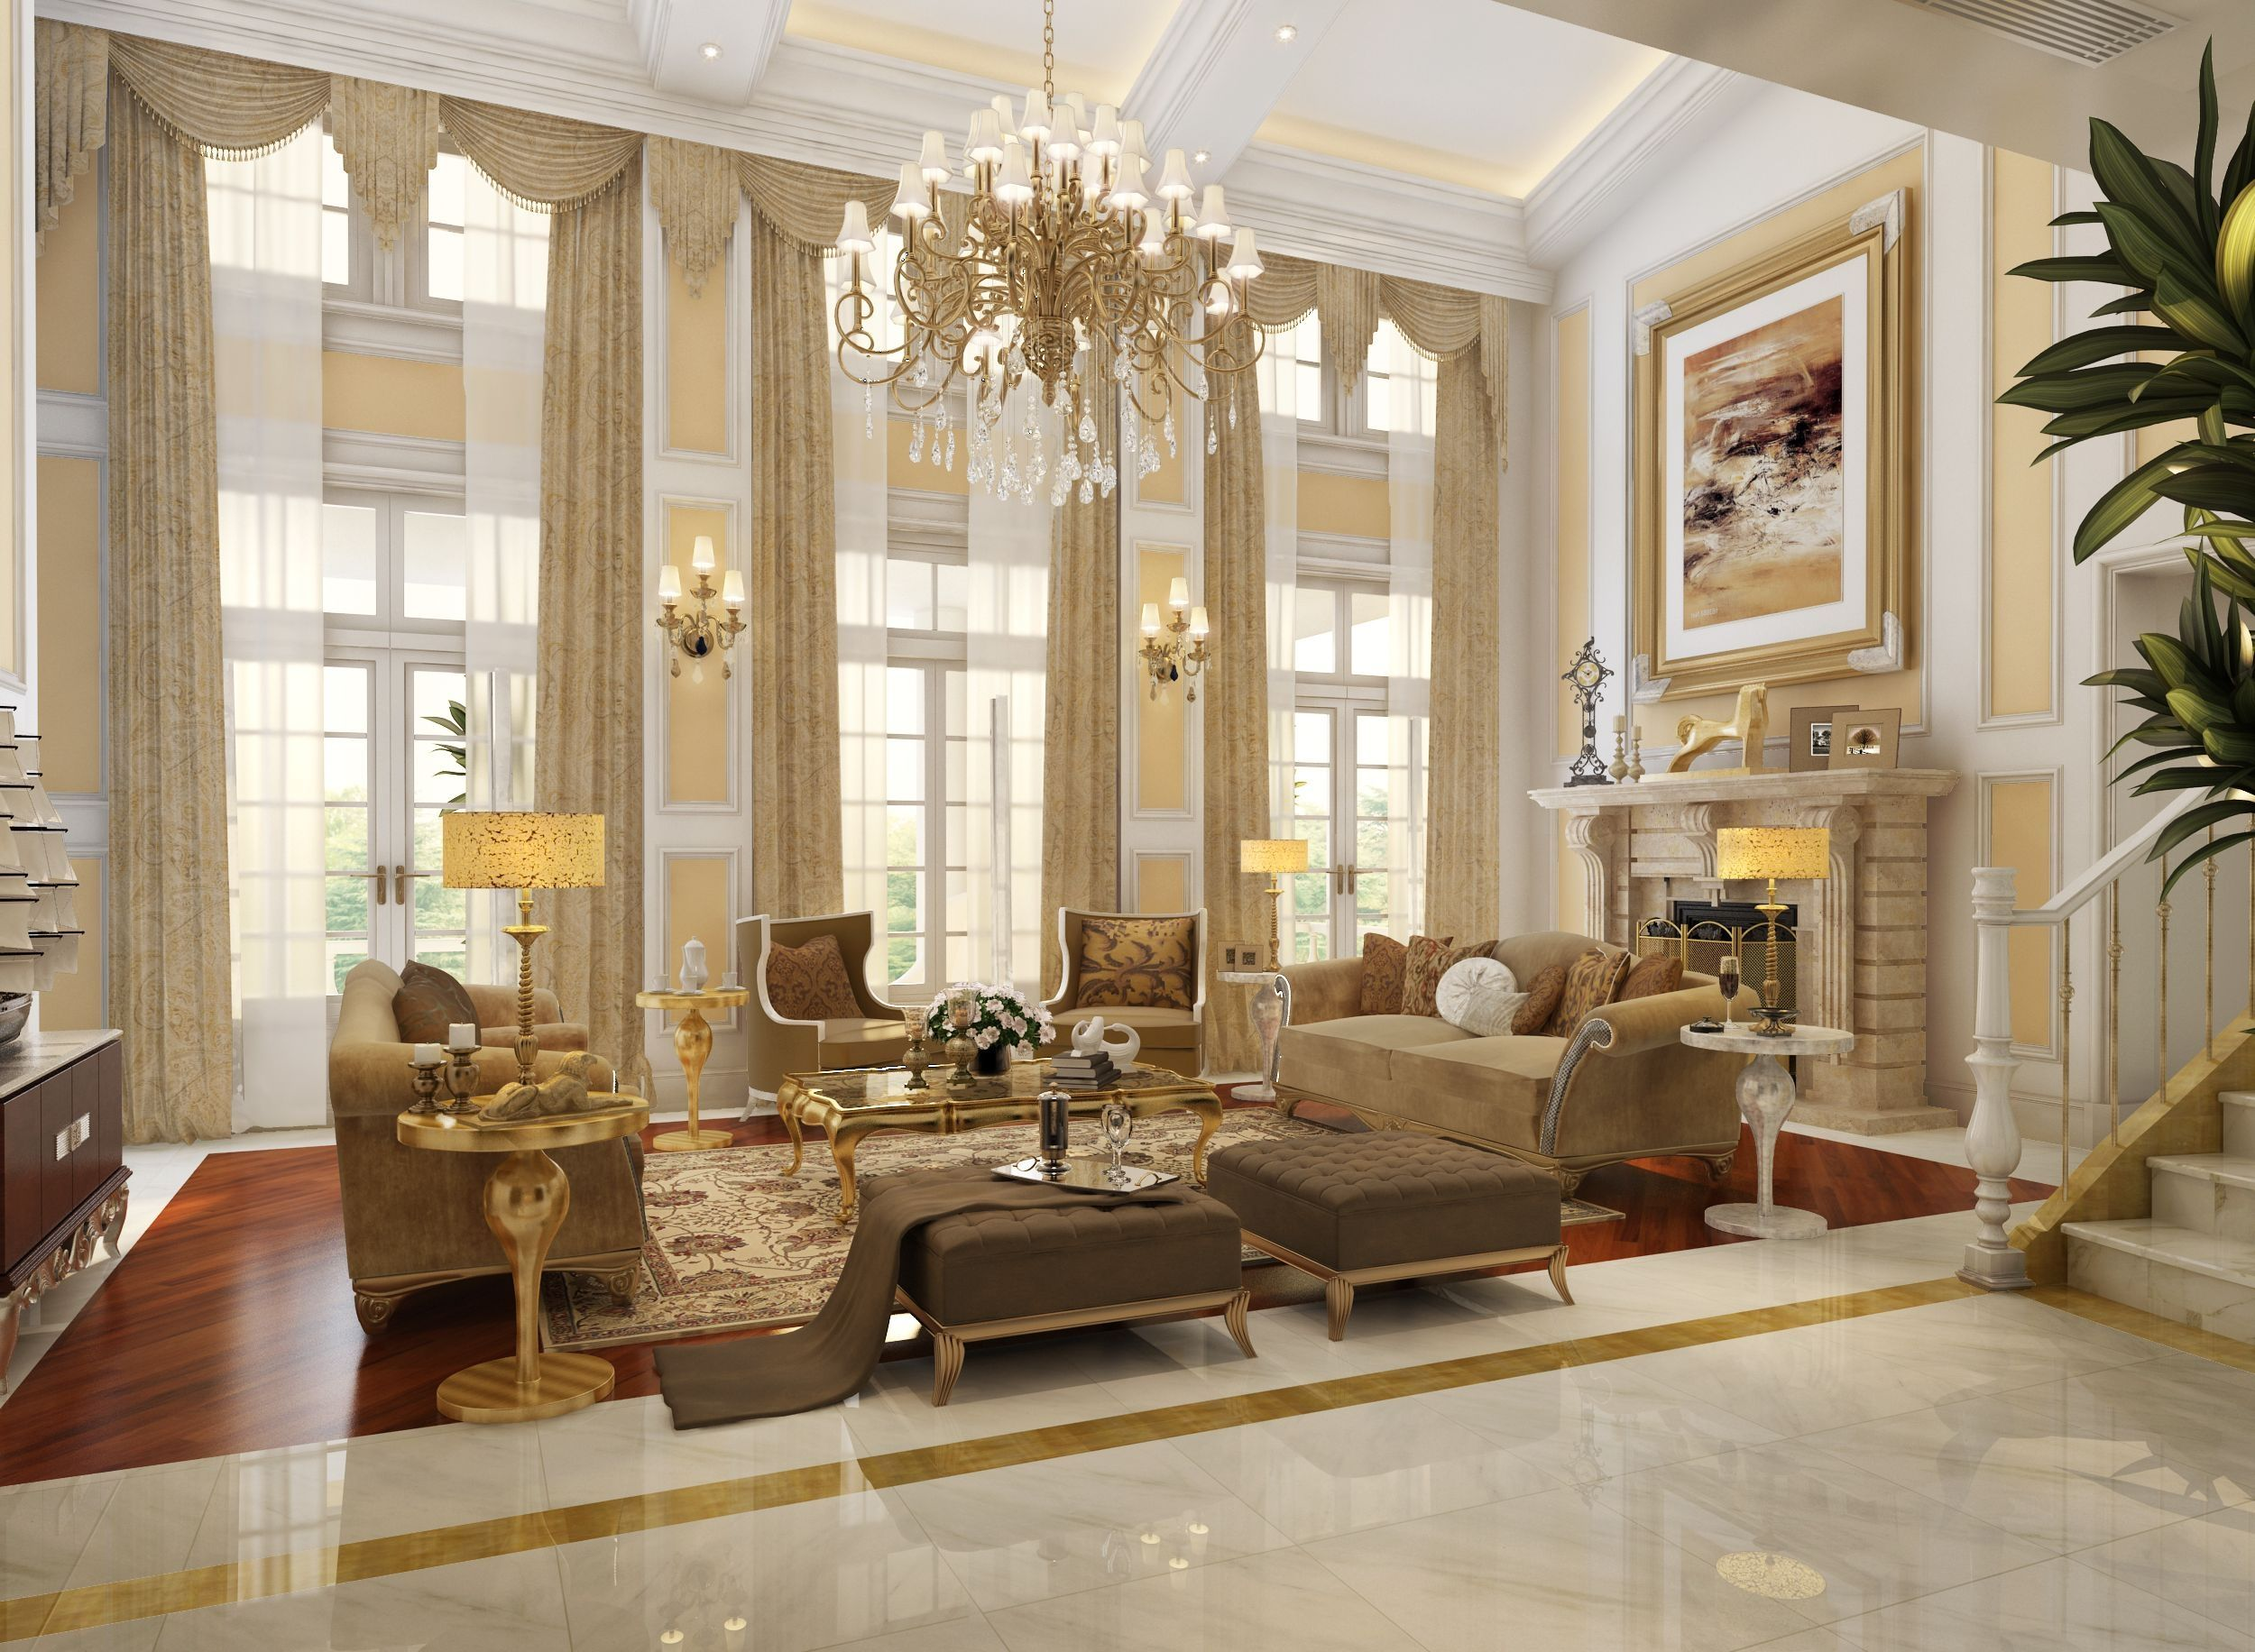 24 Luxurious Interior Design Inspirations For Your New Home with ...